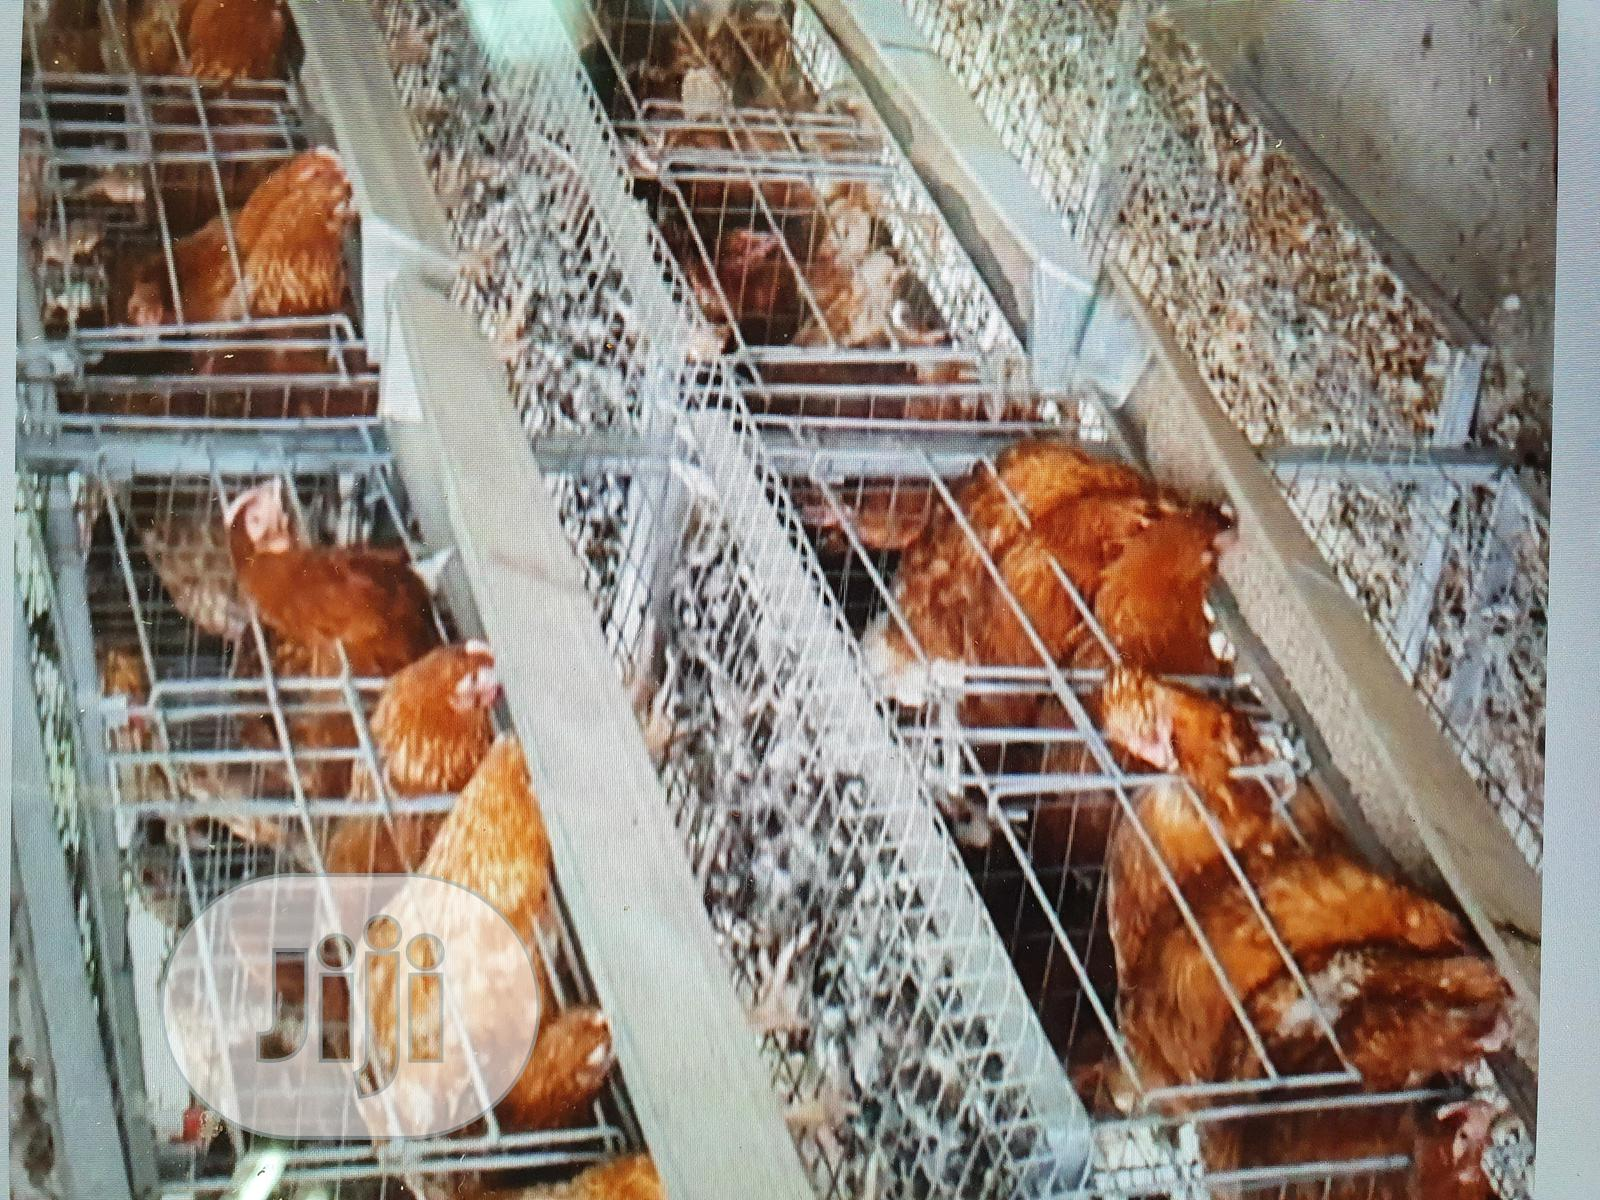 ISA Brown, Point of Lay (POL) Layer Birds | Livestock & Poultry for sale in Bwari, Abuja (FCT) State, Nigeria